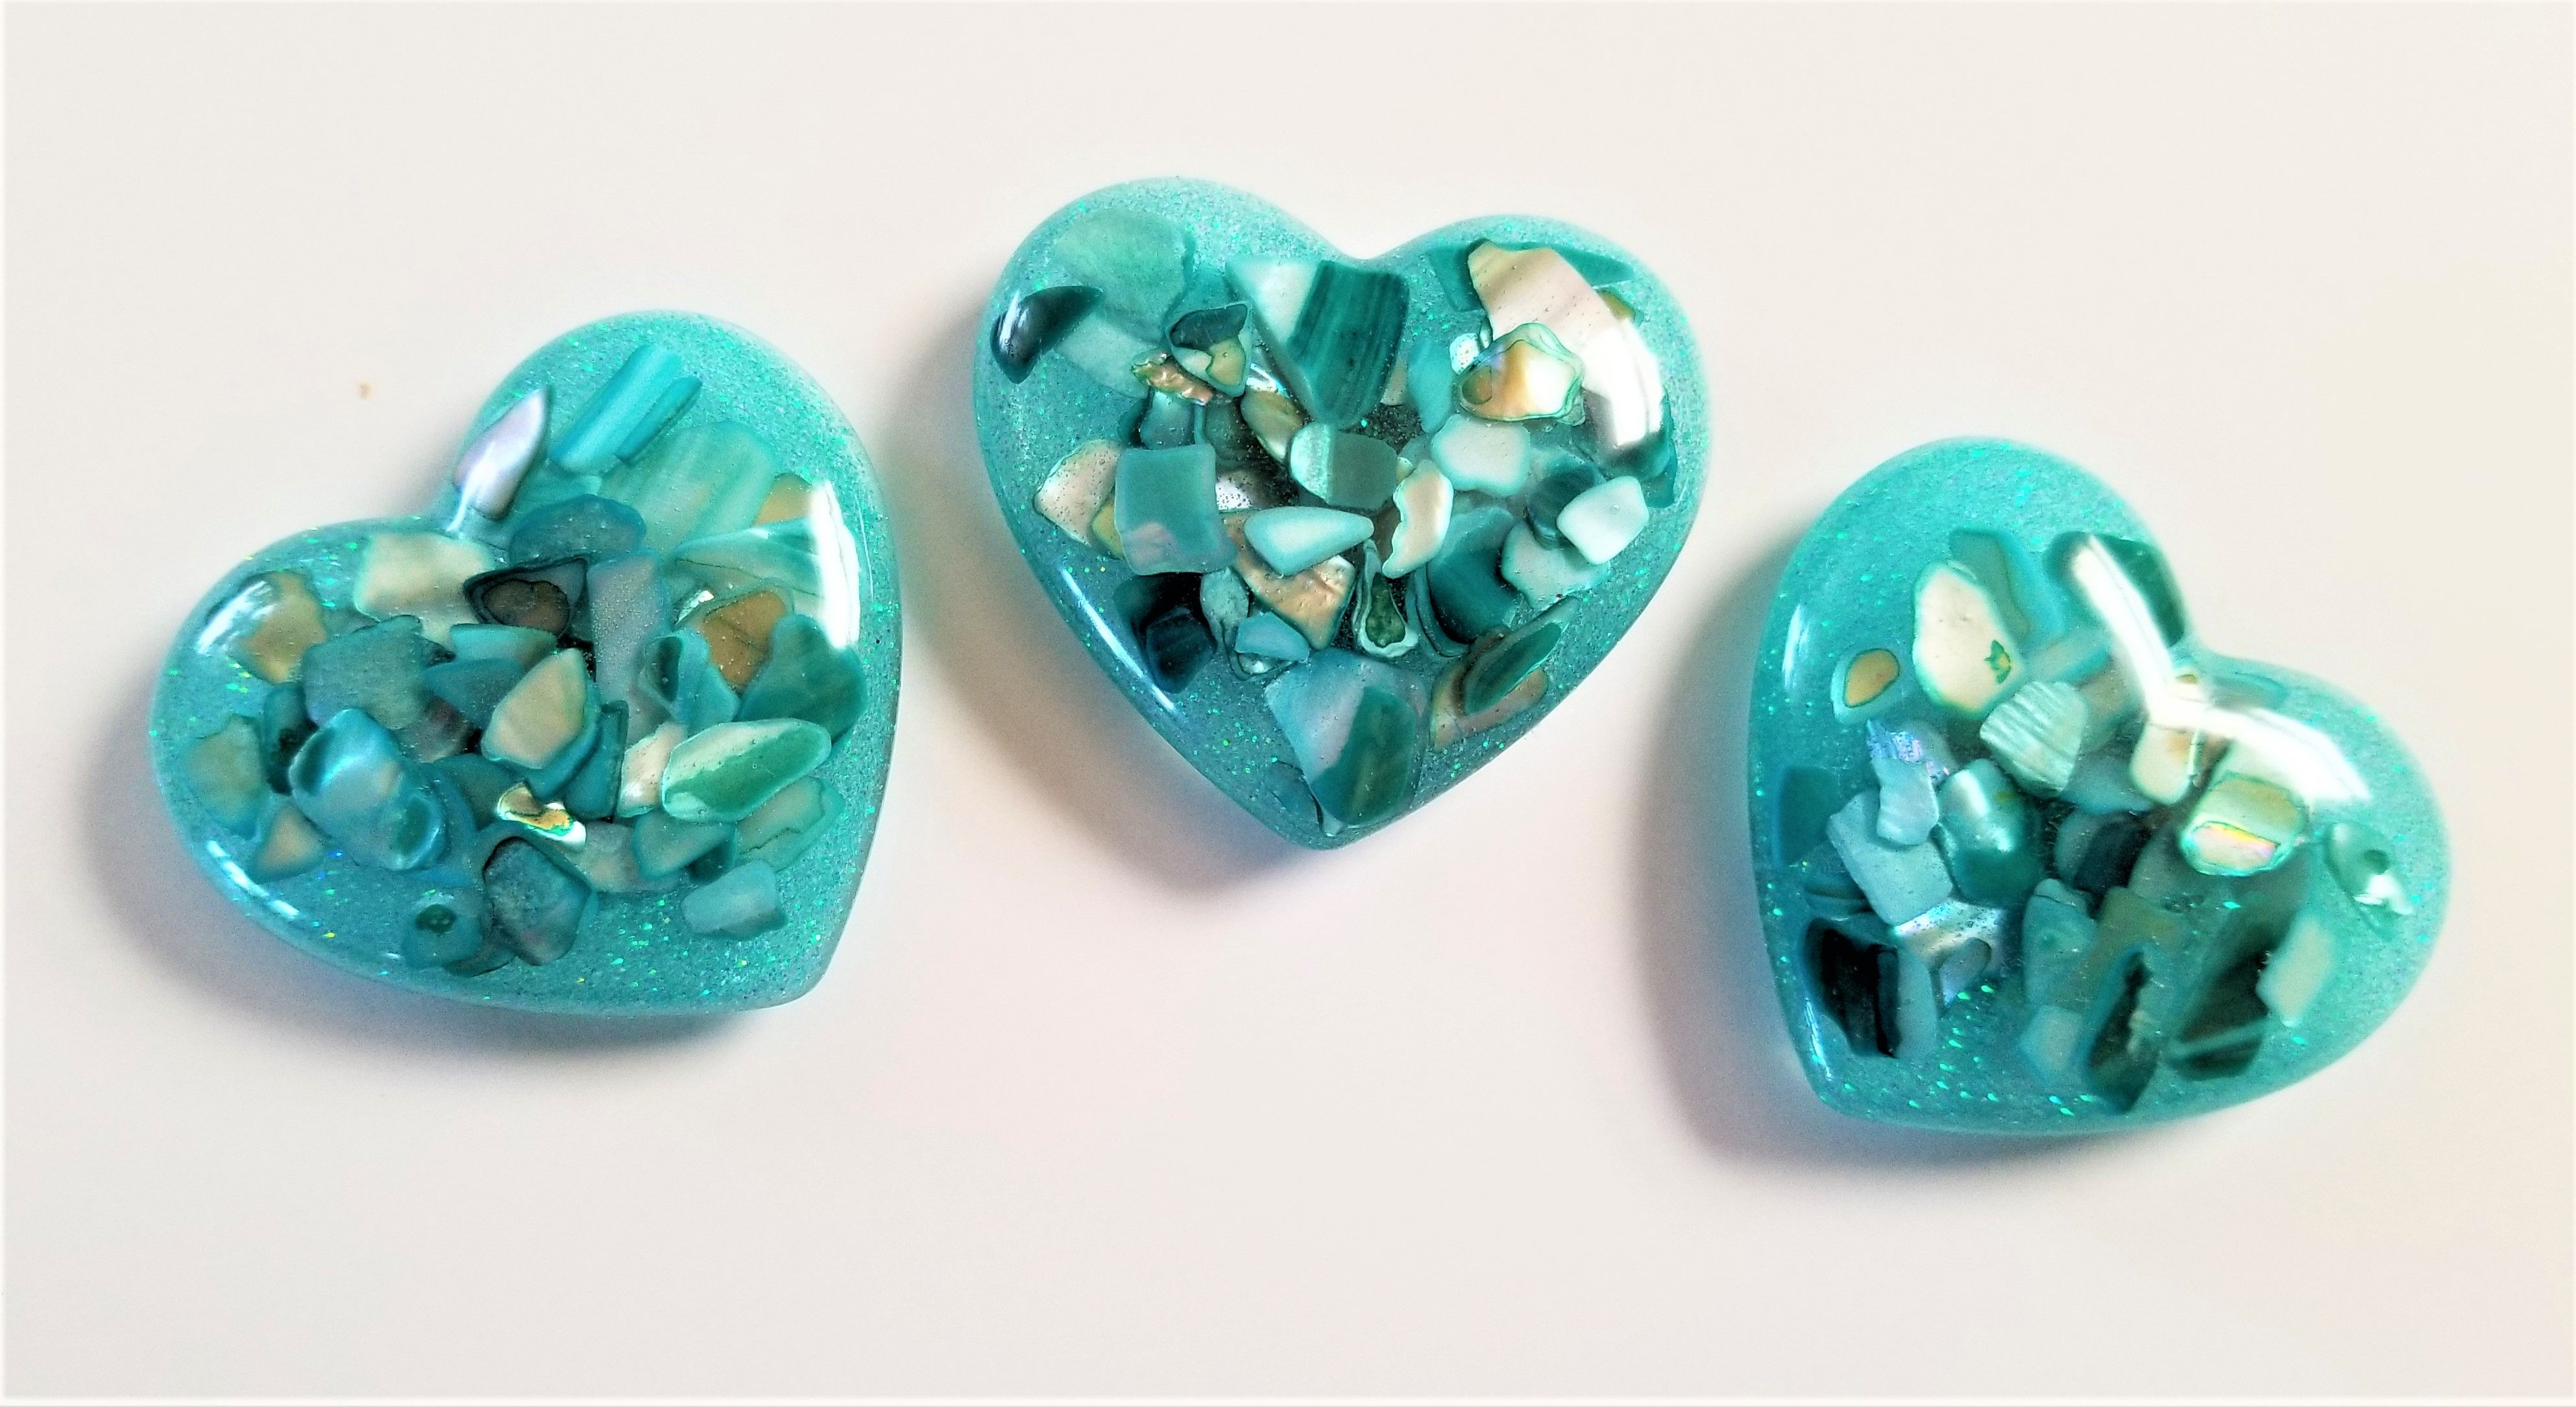 Crushed Sea Shell Magnets How To Make Resin Epoxy Resin Art Resin